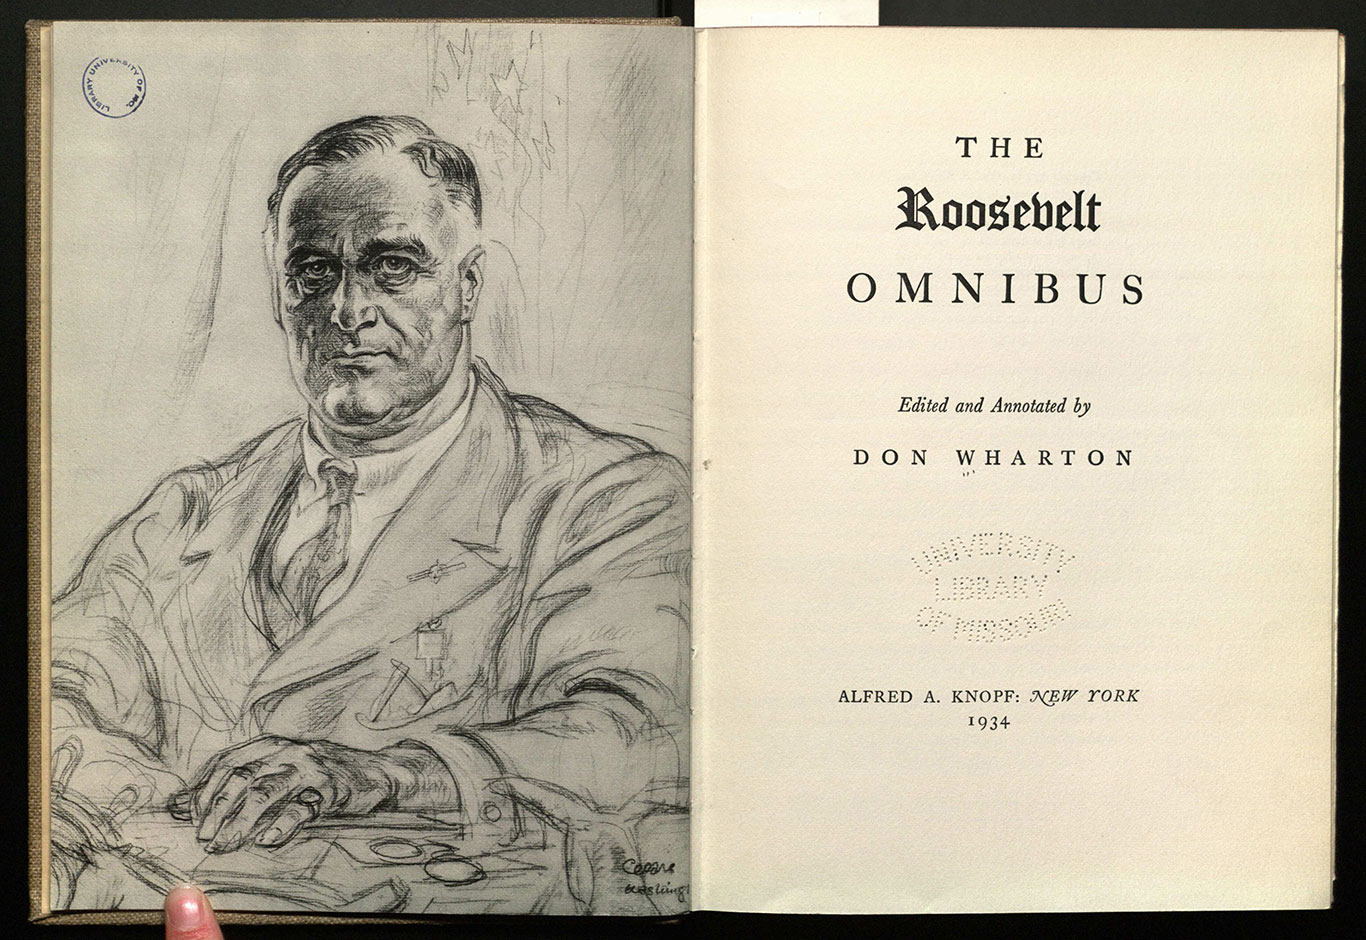 The Roosevelt omnibus / edited and annotated by Don Wharton.